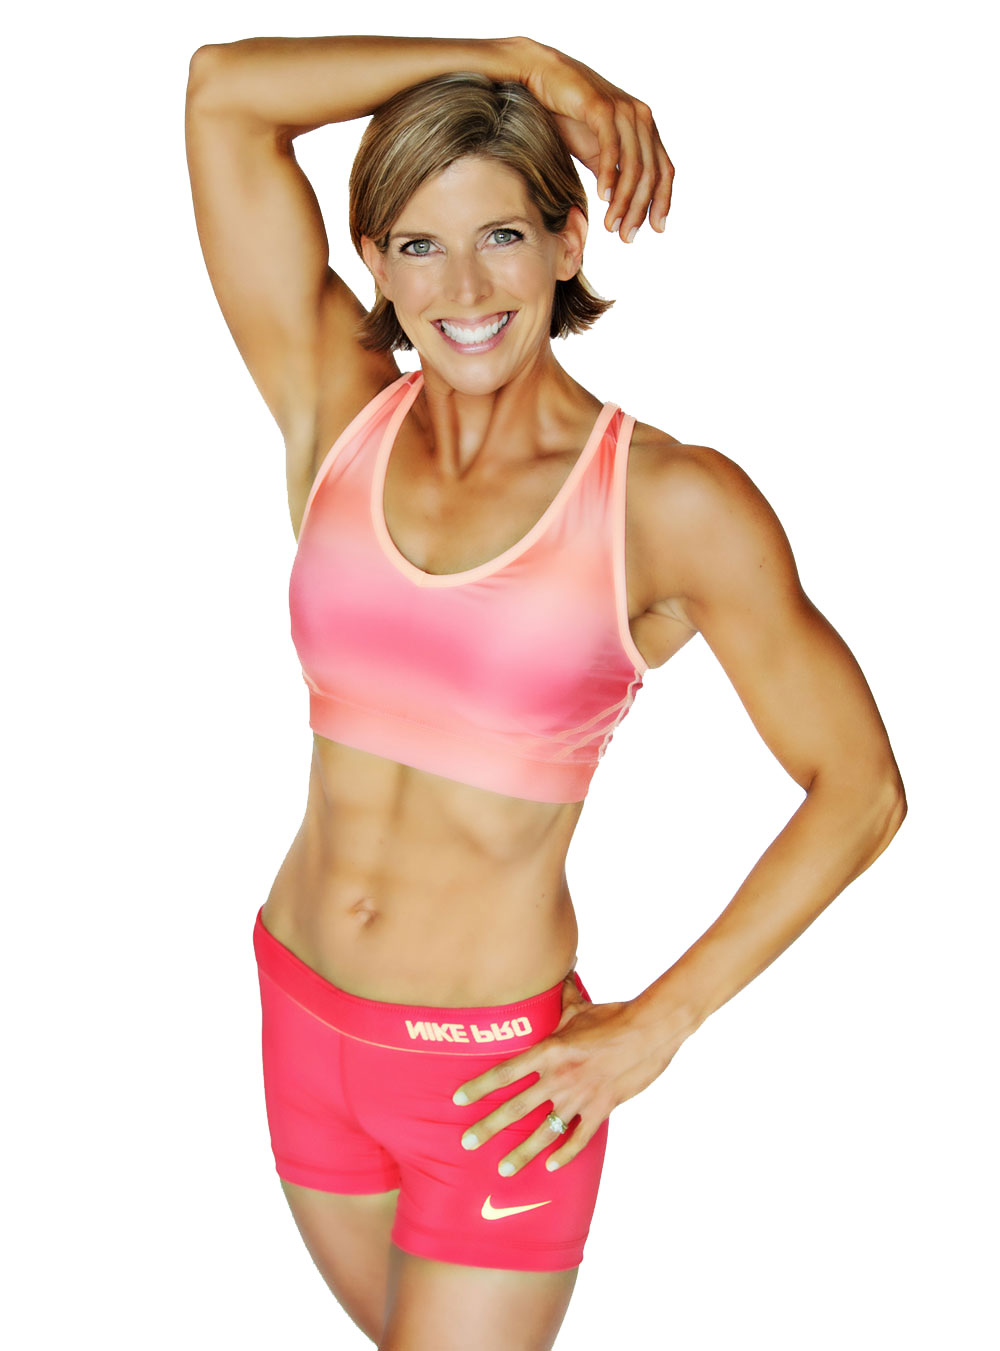 Learn about Cassye Delphy's three fitness programs